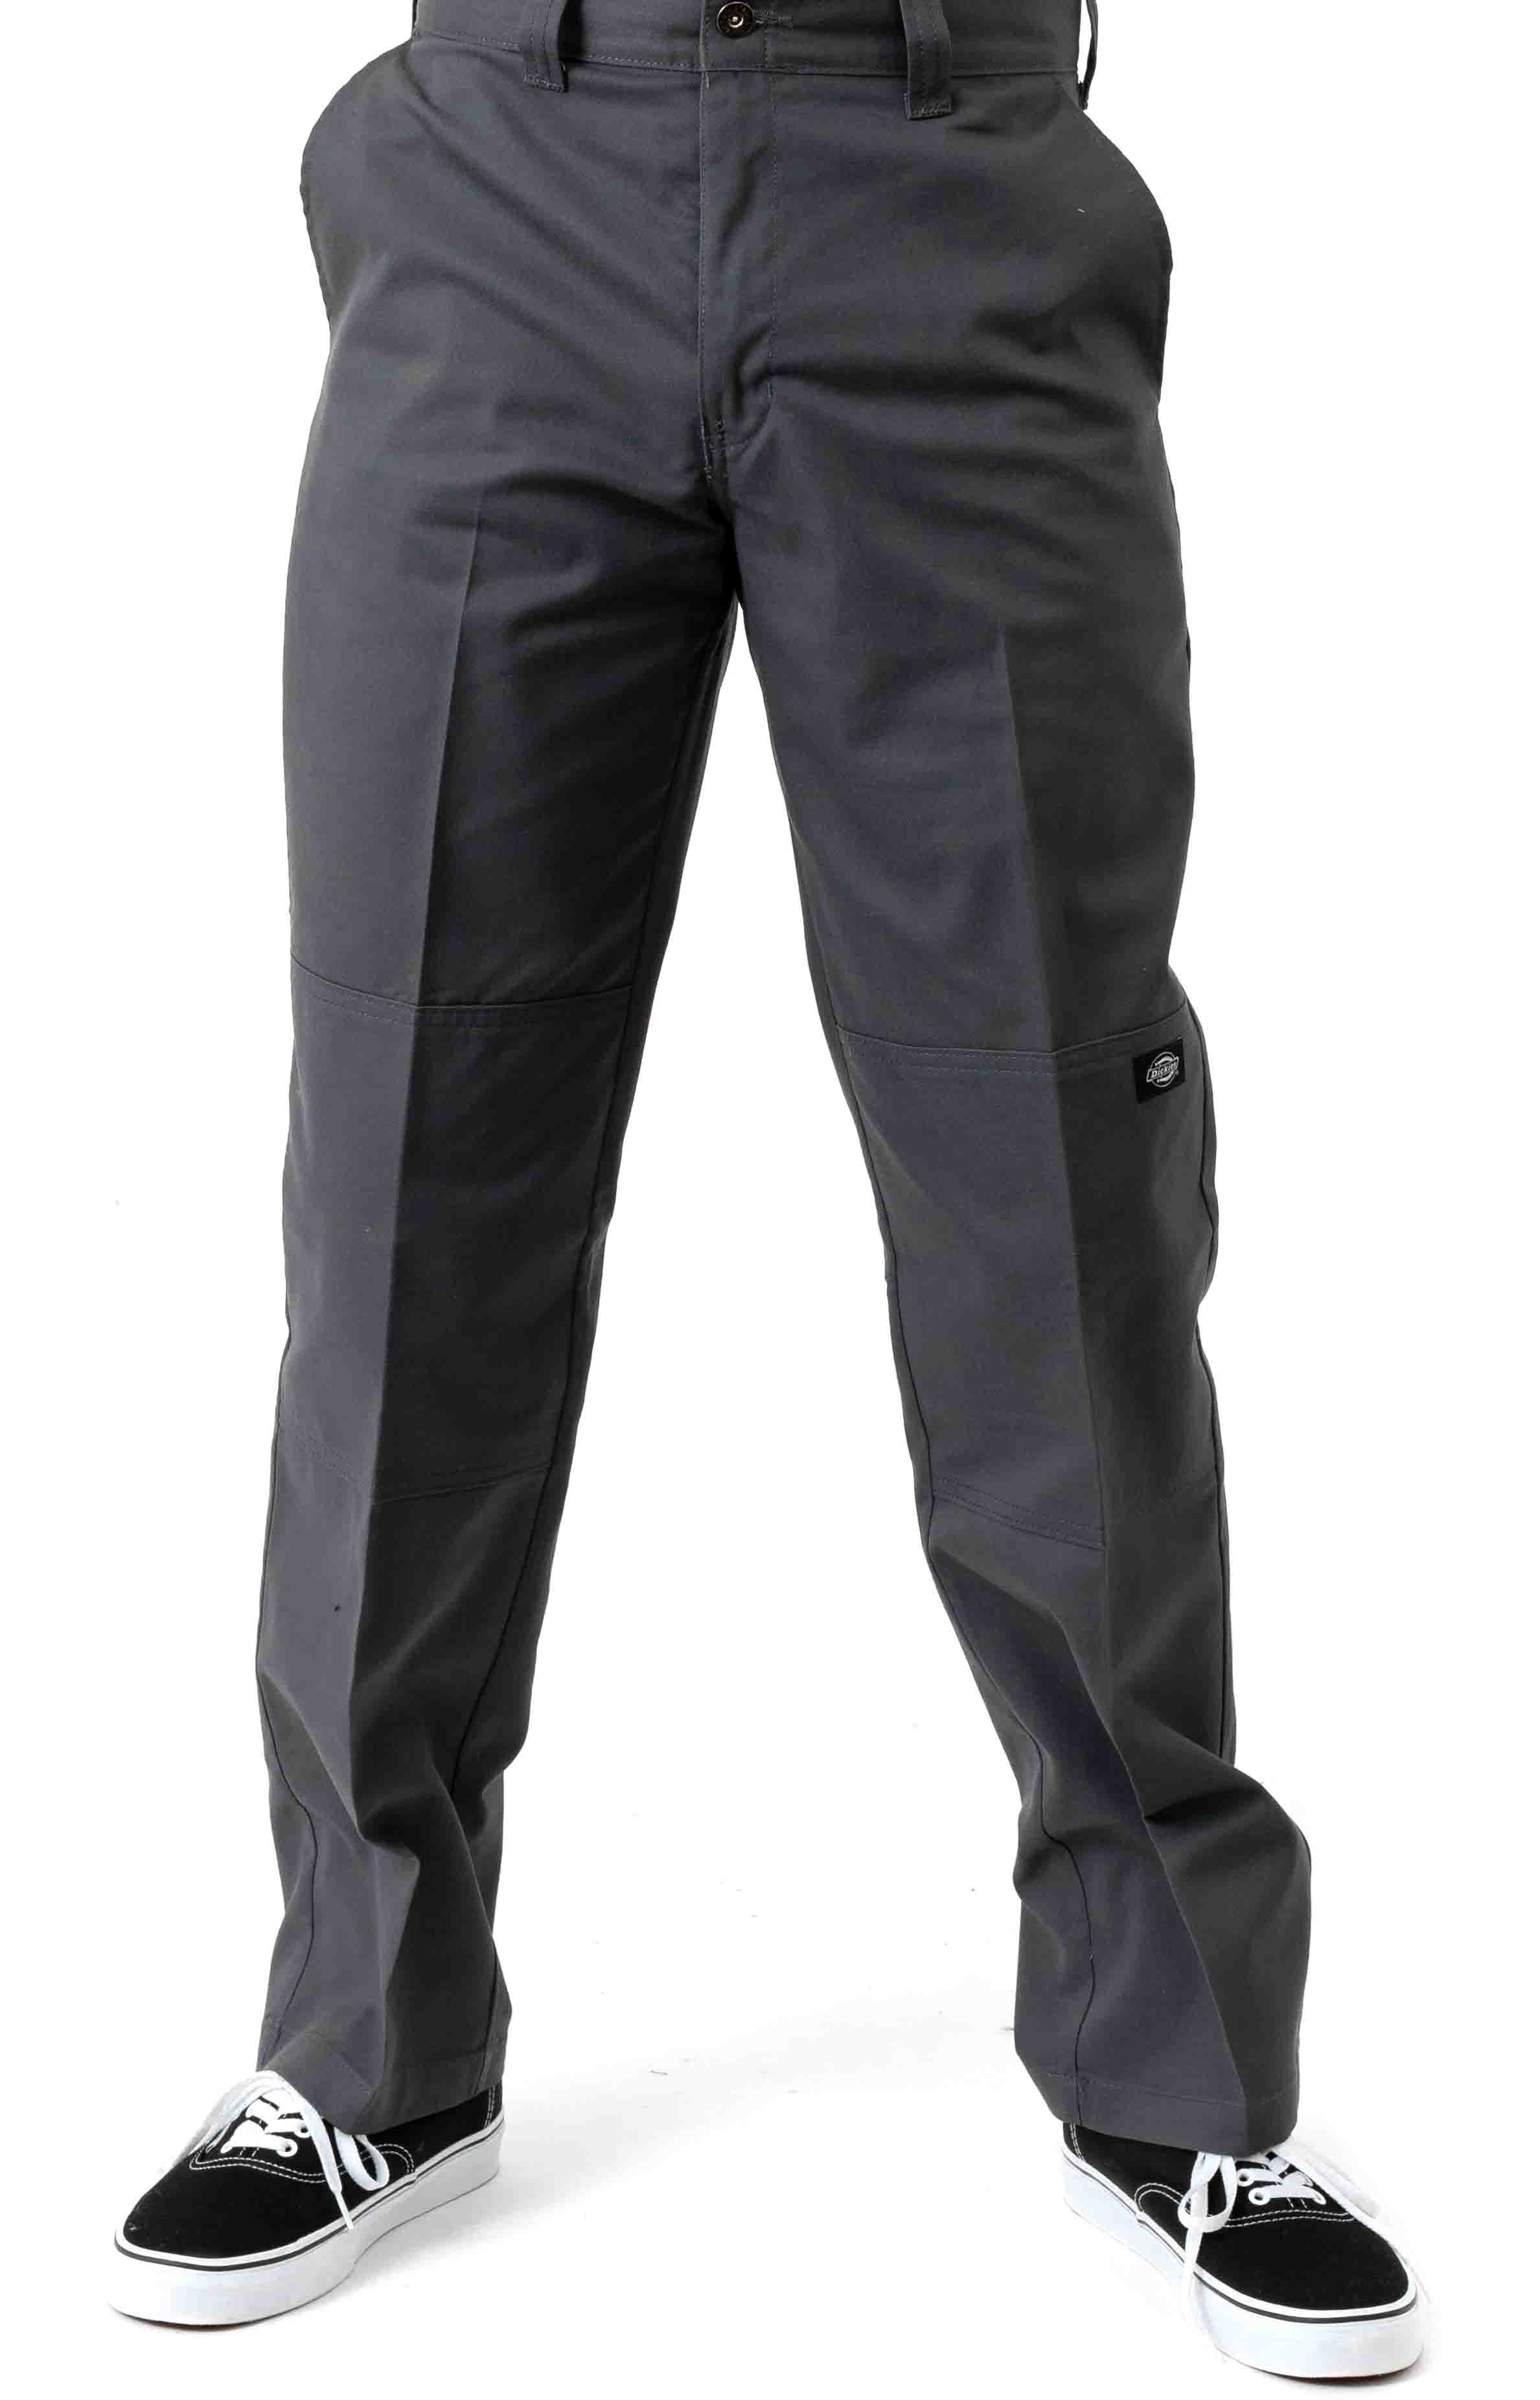 (WP896CH) '67 Regular Fit Double Knee Work Pants - Charcoal